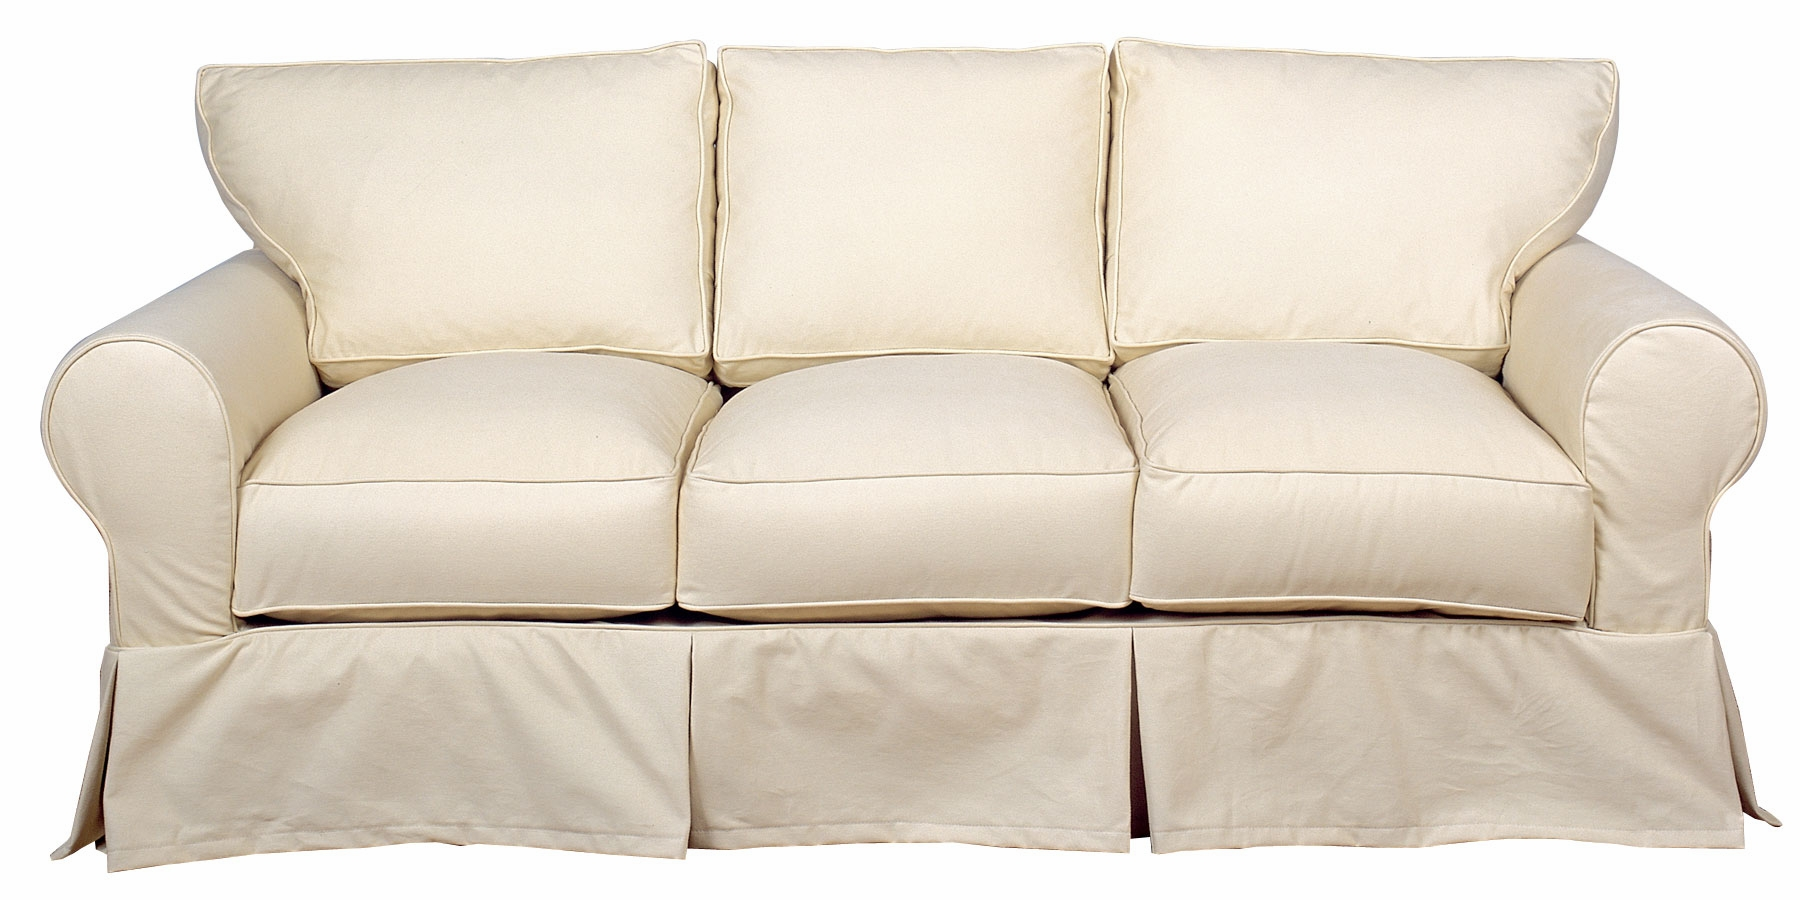 Three cushion sofa slipcover cushion 3 sofa slipcover slipcovers for couch thesofa Loveseat slipcover